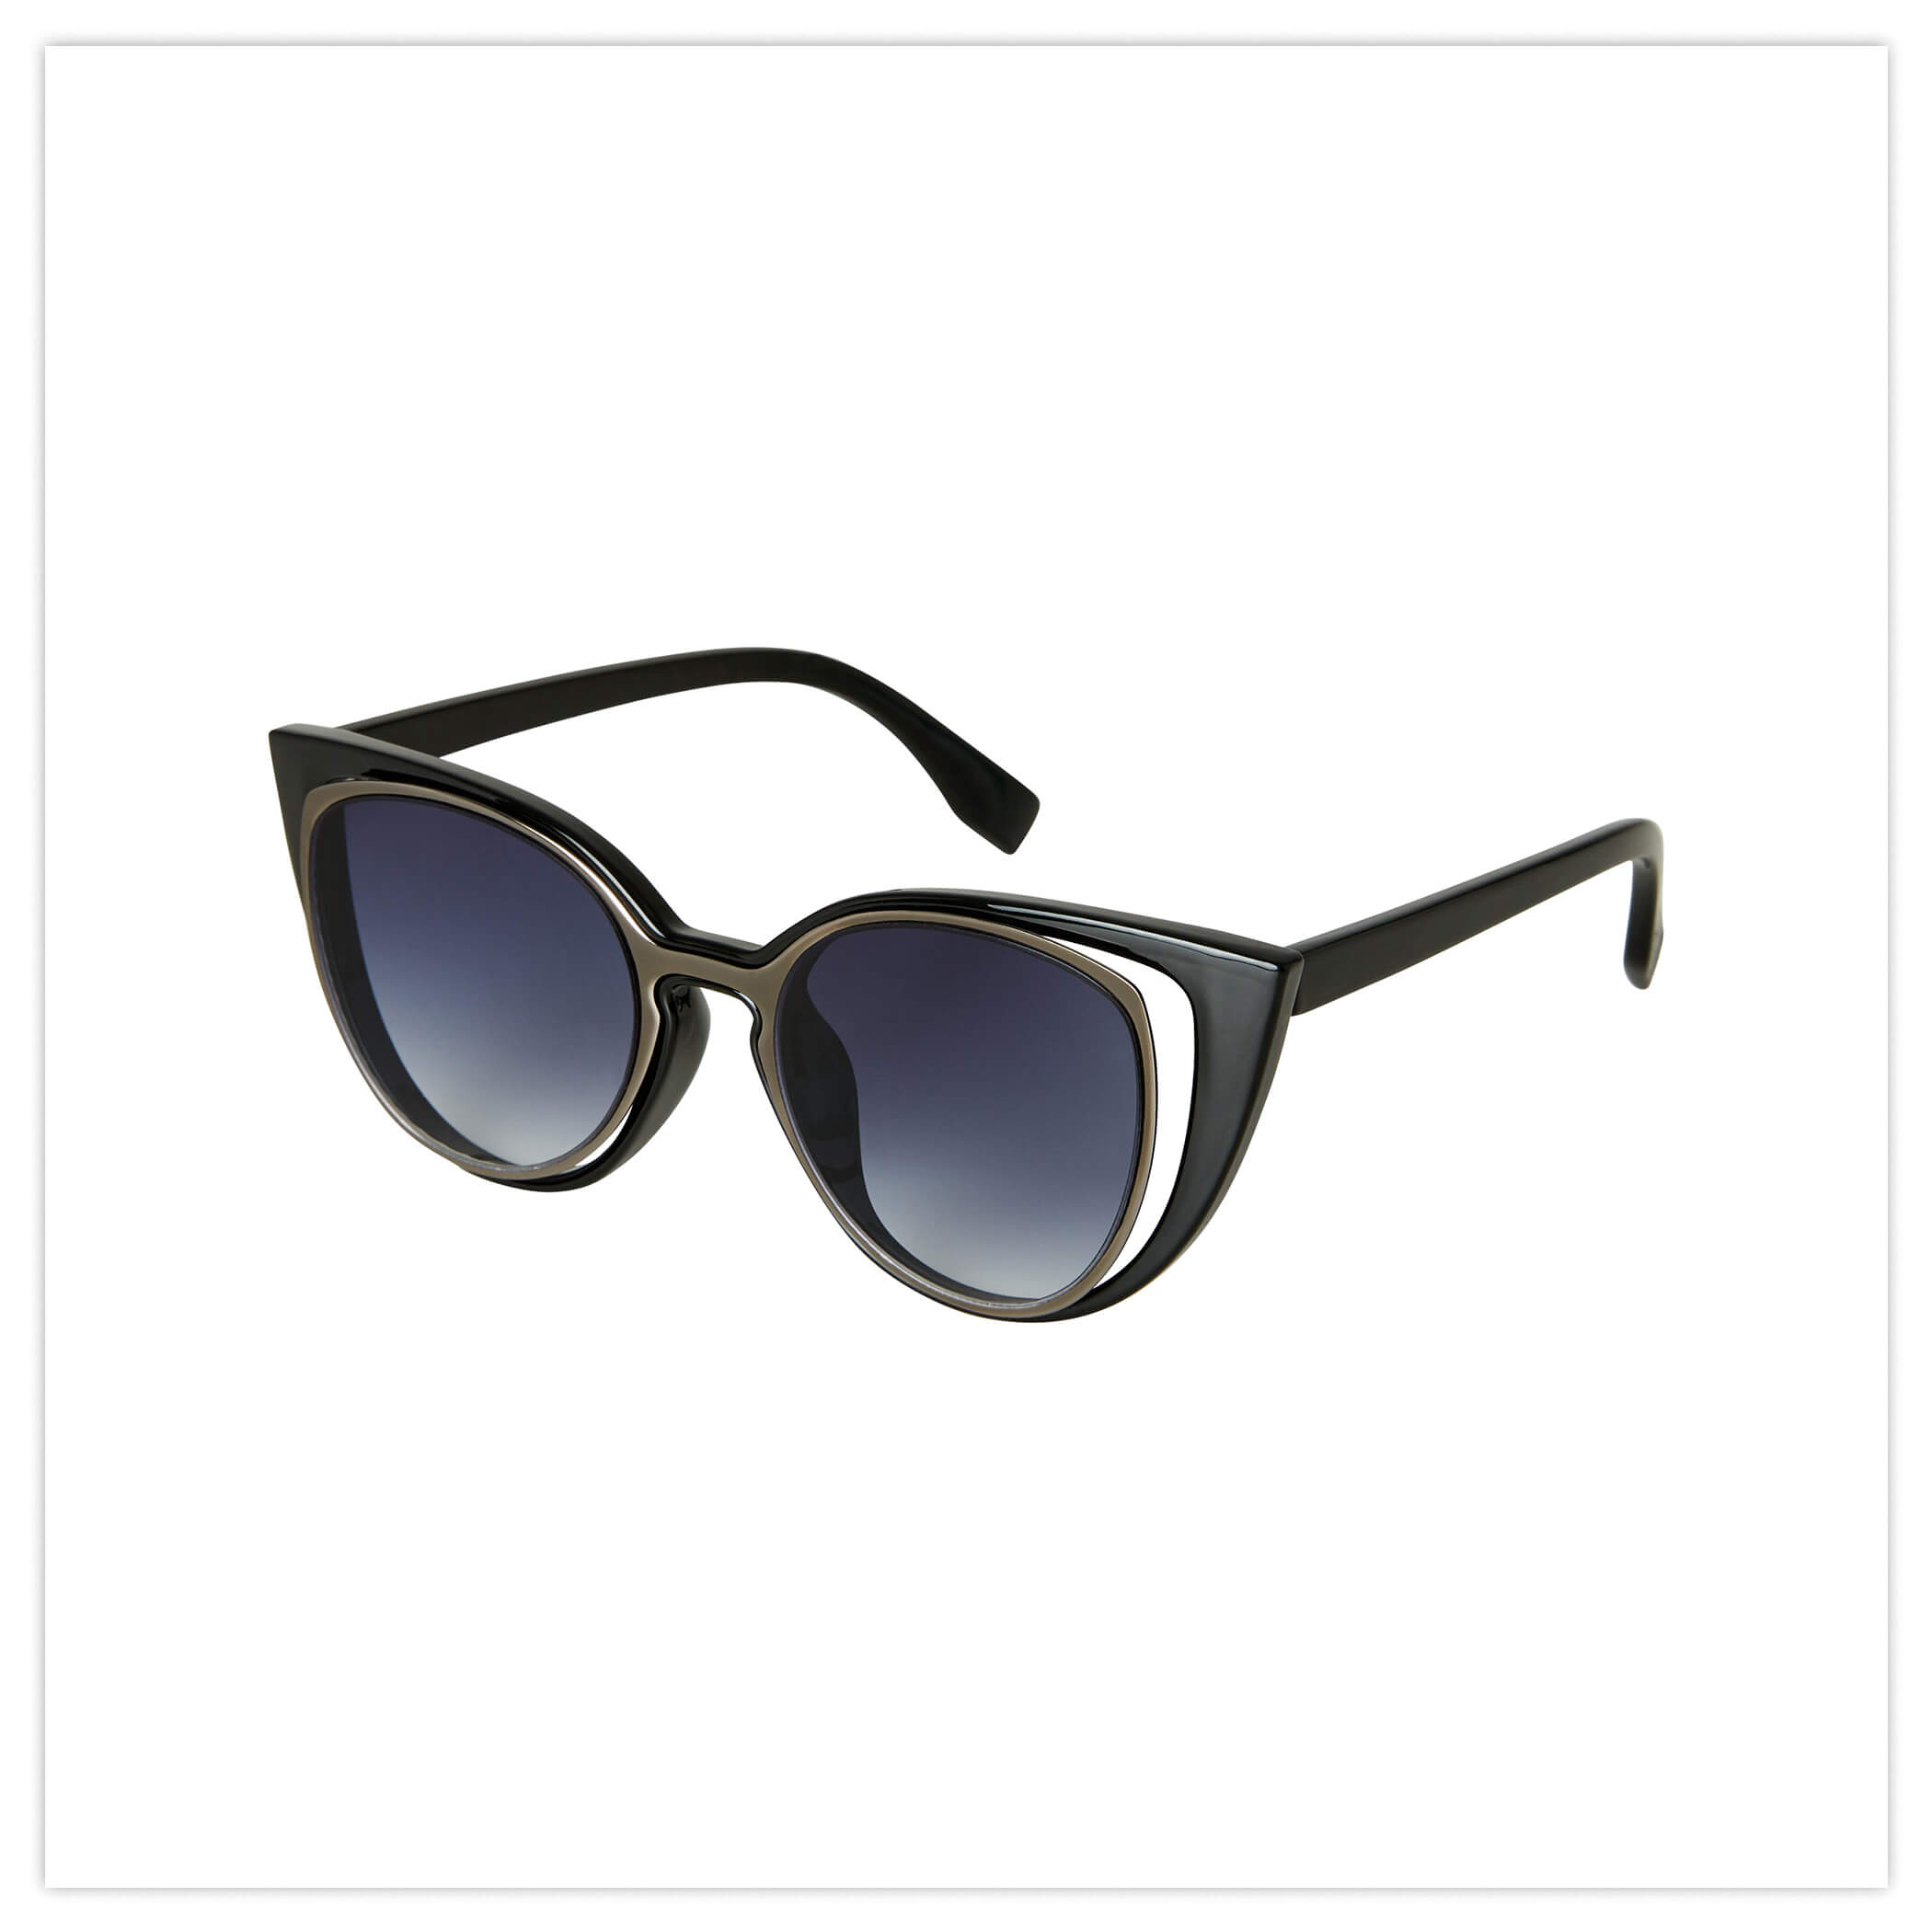 SPLIT LENSE VINTAGE SUNGLASSES